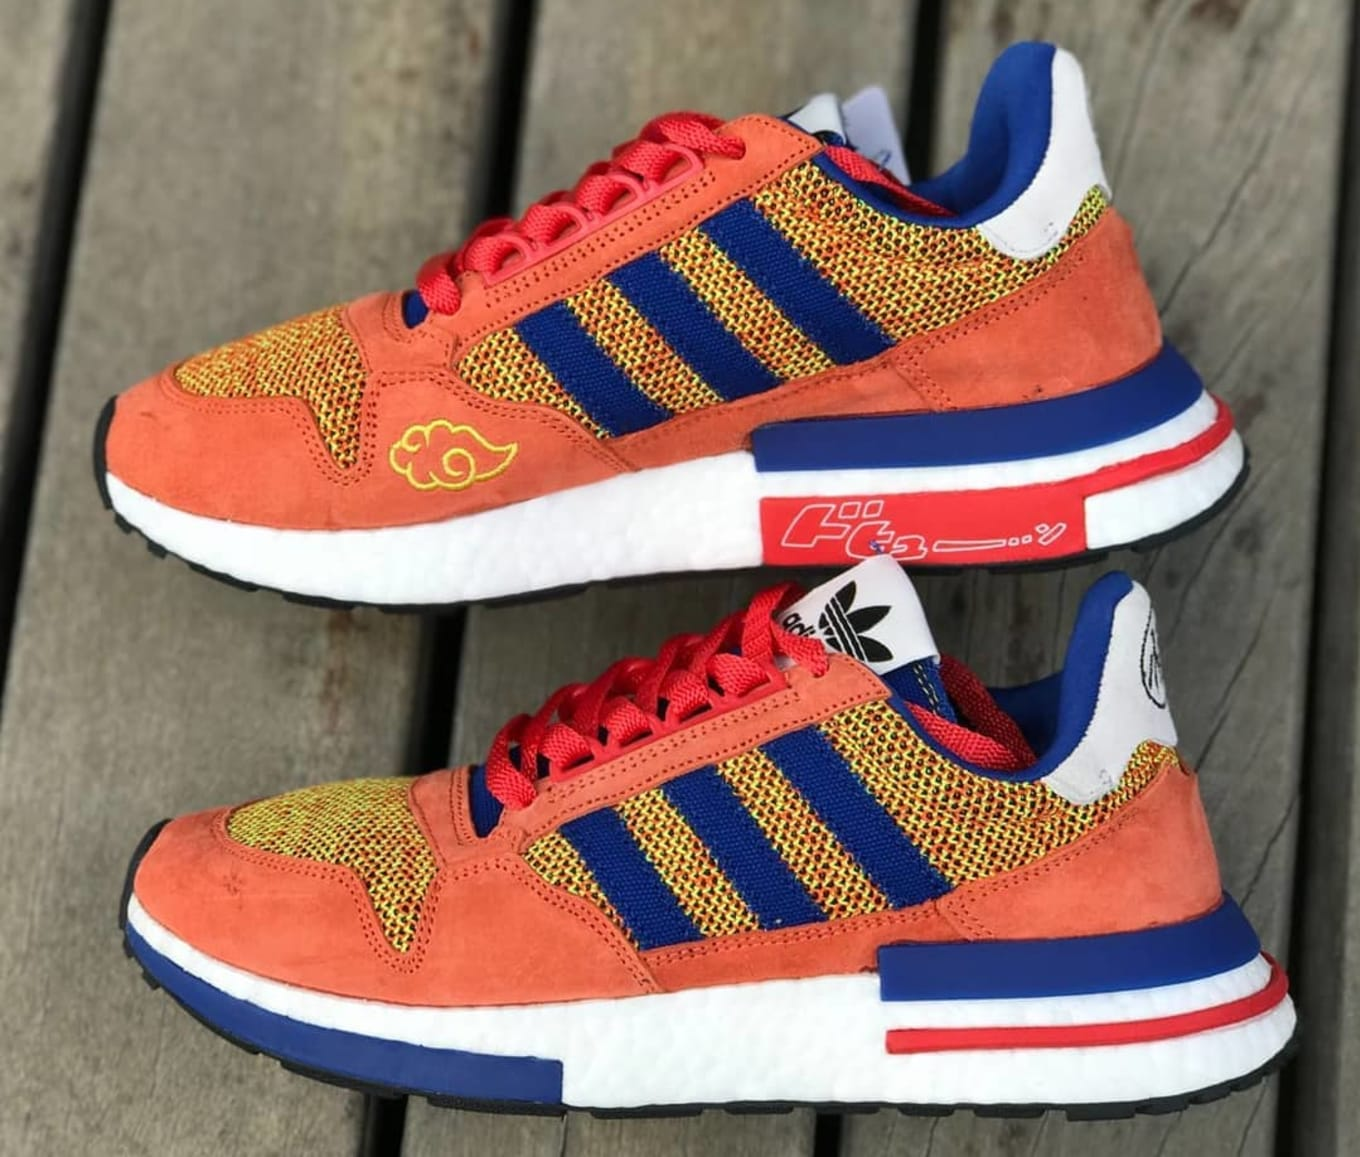 1b2f47f0e ...  Son Goku  Dragon Ball Z x Adidas Sneakers. ZX 500 RM coming this fall.